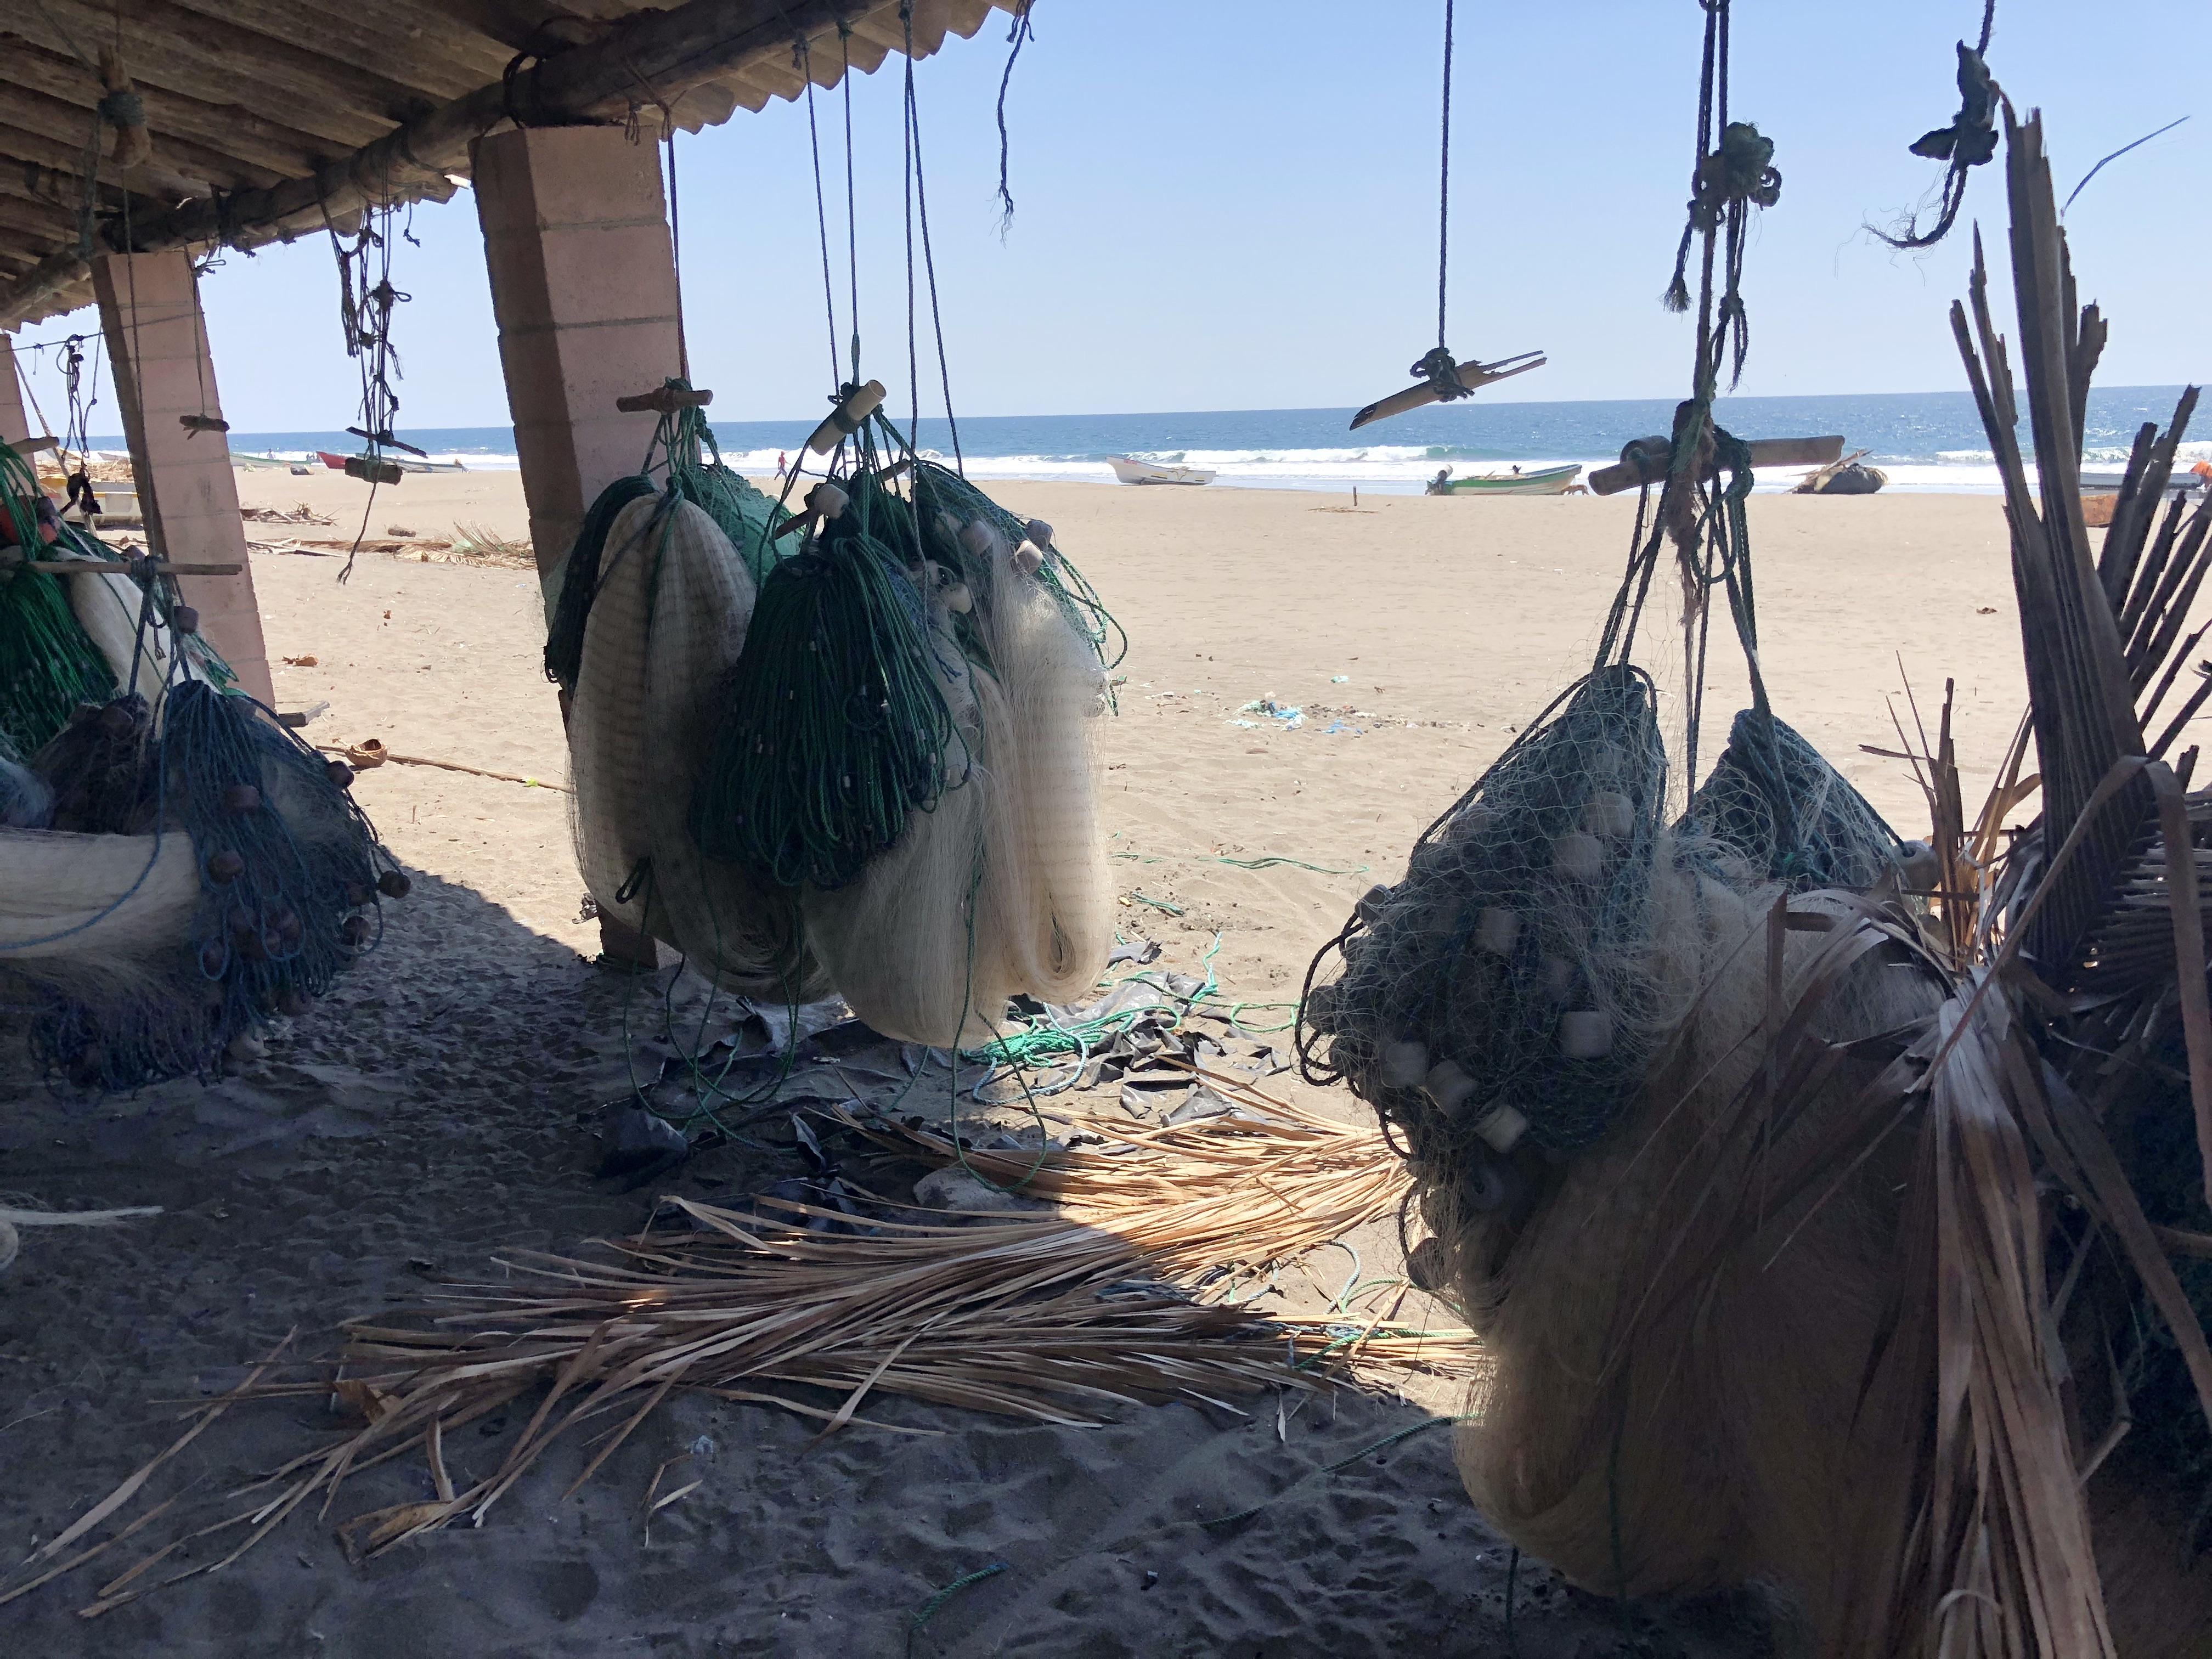 Hanging Fishing Nets on the Beach in Metalio